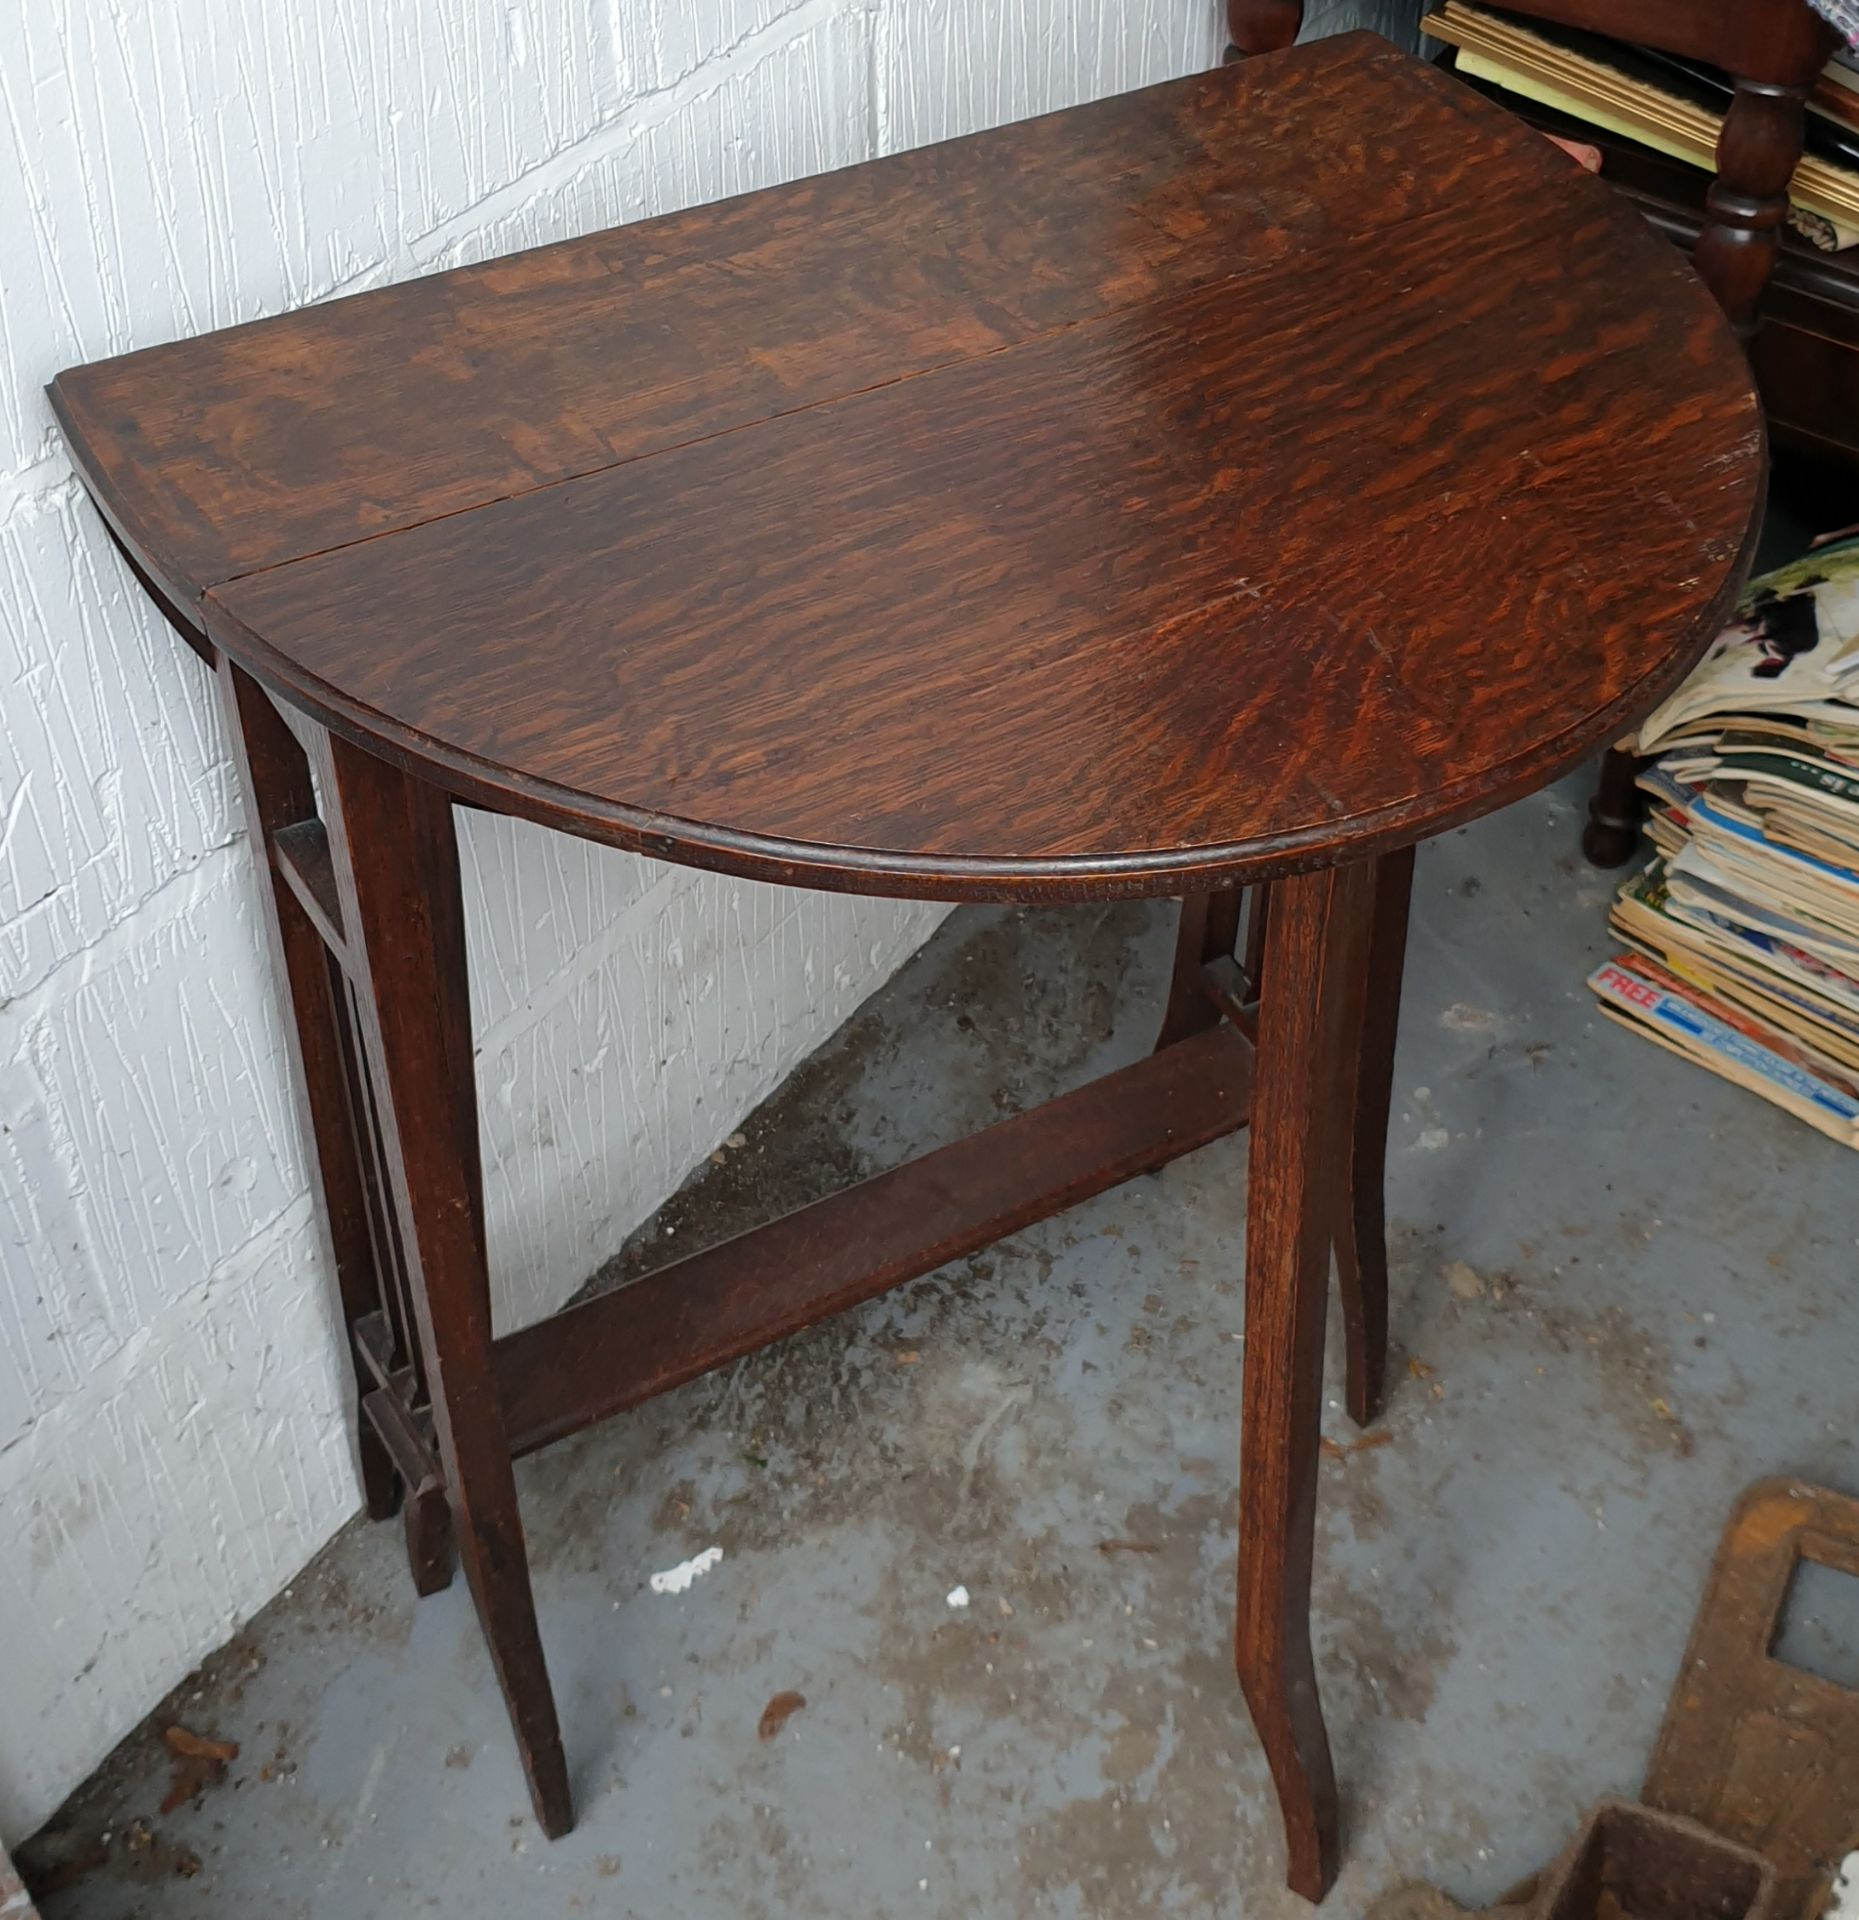 Antique Small Edwardian Gate Leg Table - Image 3 of 3